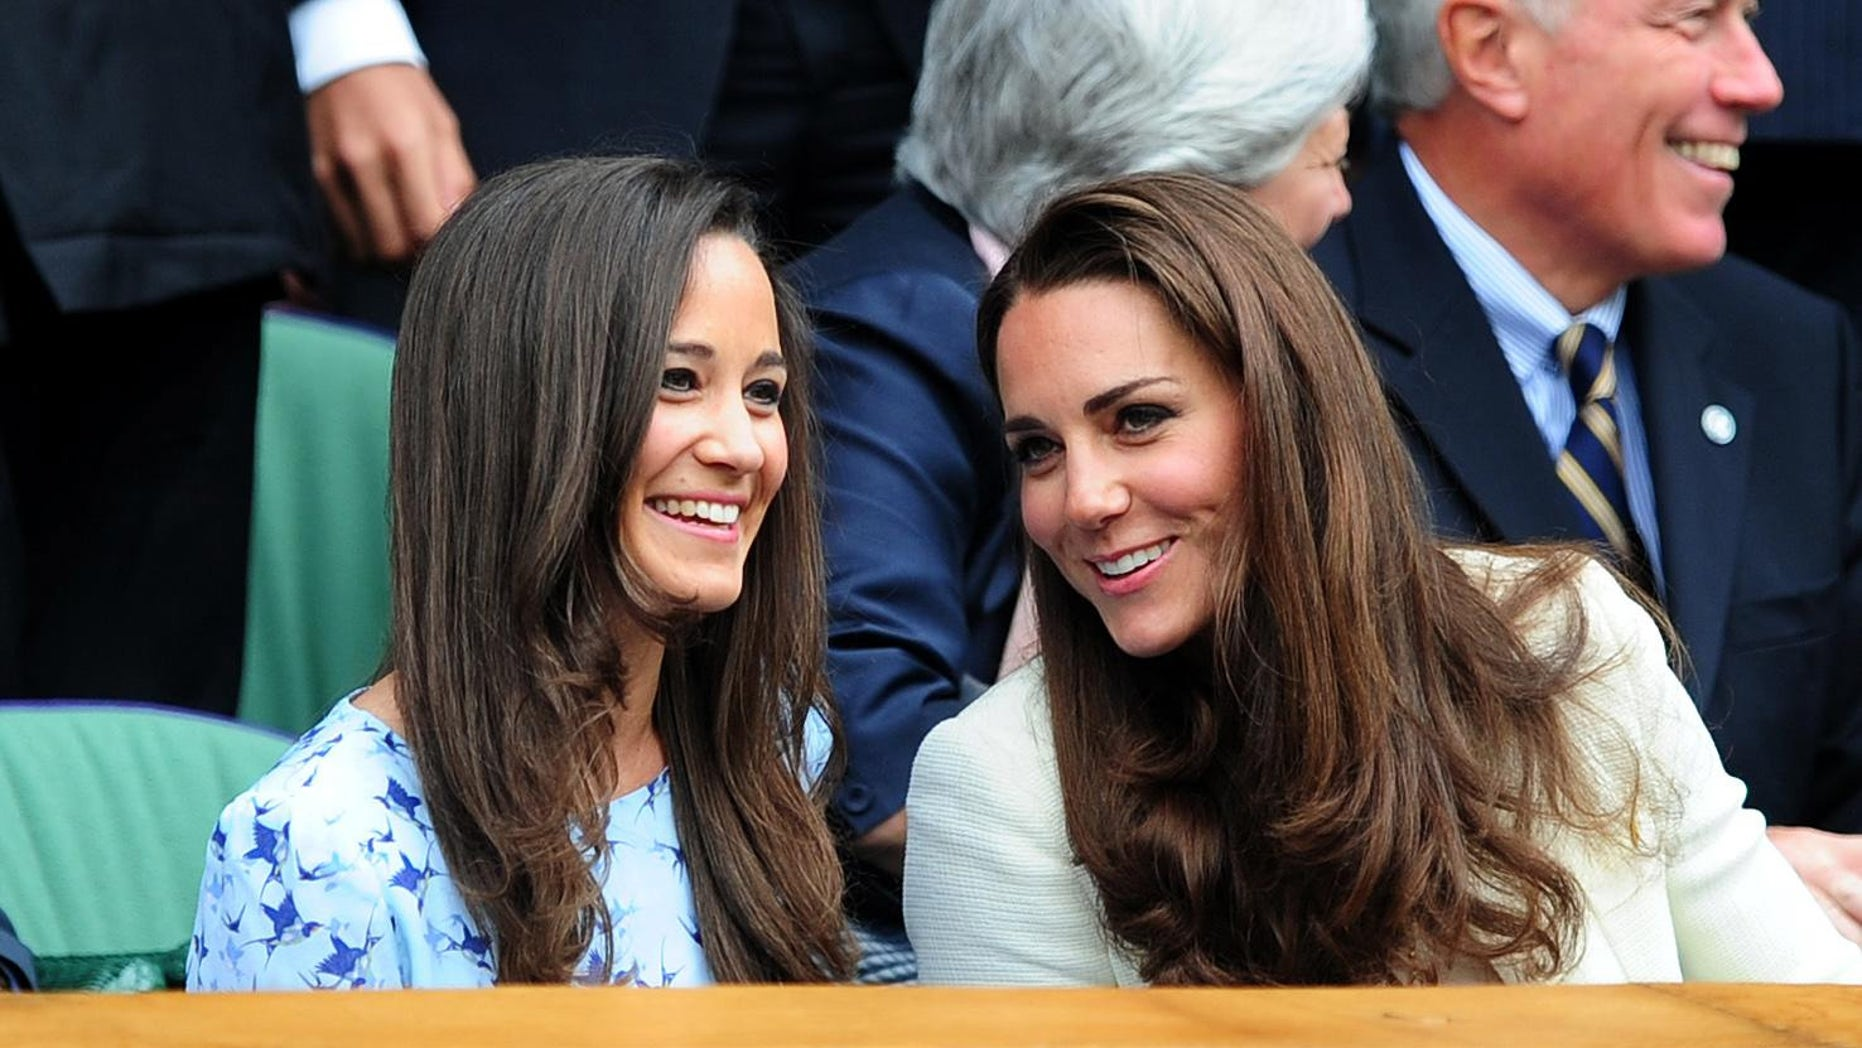 The Duchess of Cambridge and Pippa, seen here in 2012, had originally moved into the apartment in 2002.